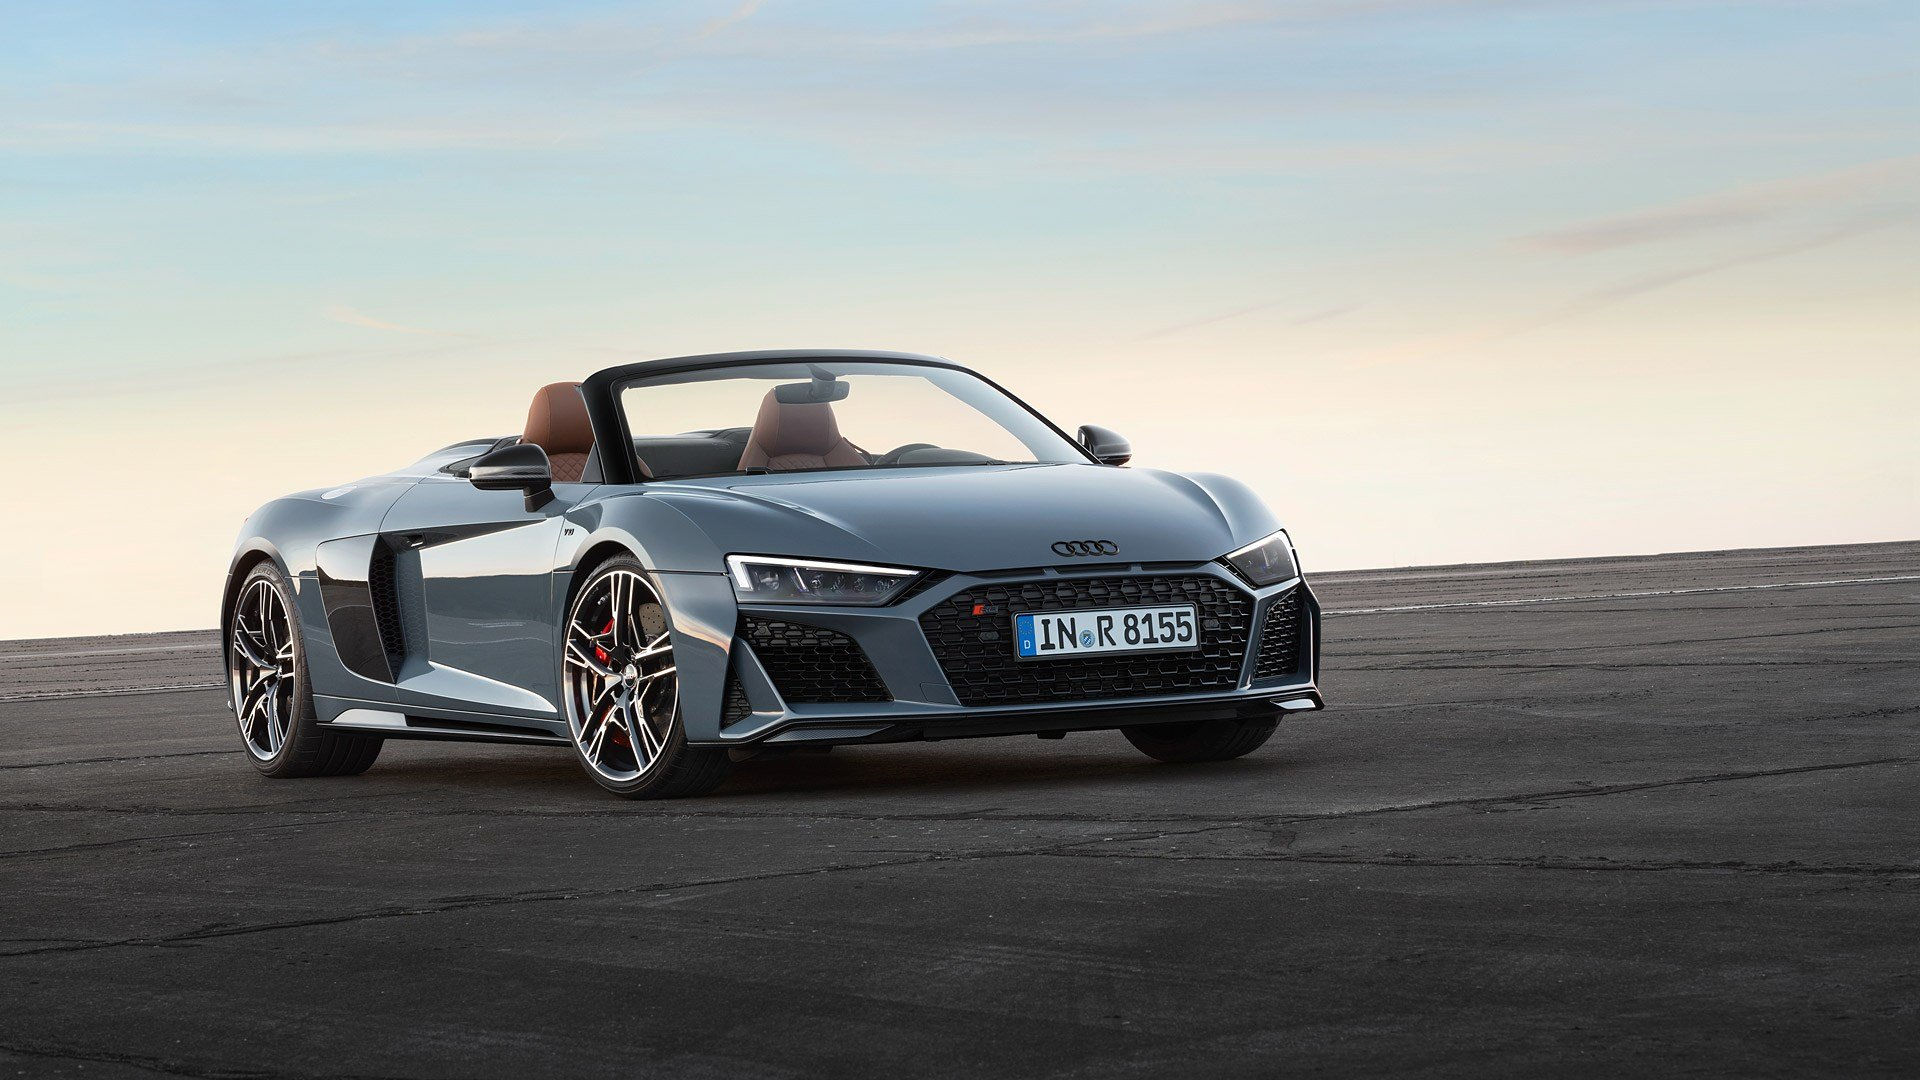 New 2019 Audi R8 Wallpapers Hd Images Wsupercars On This Month